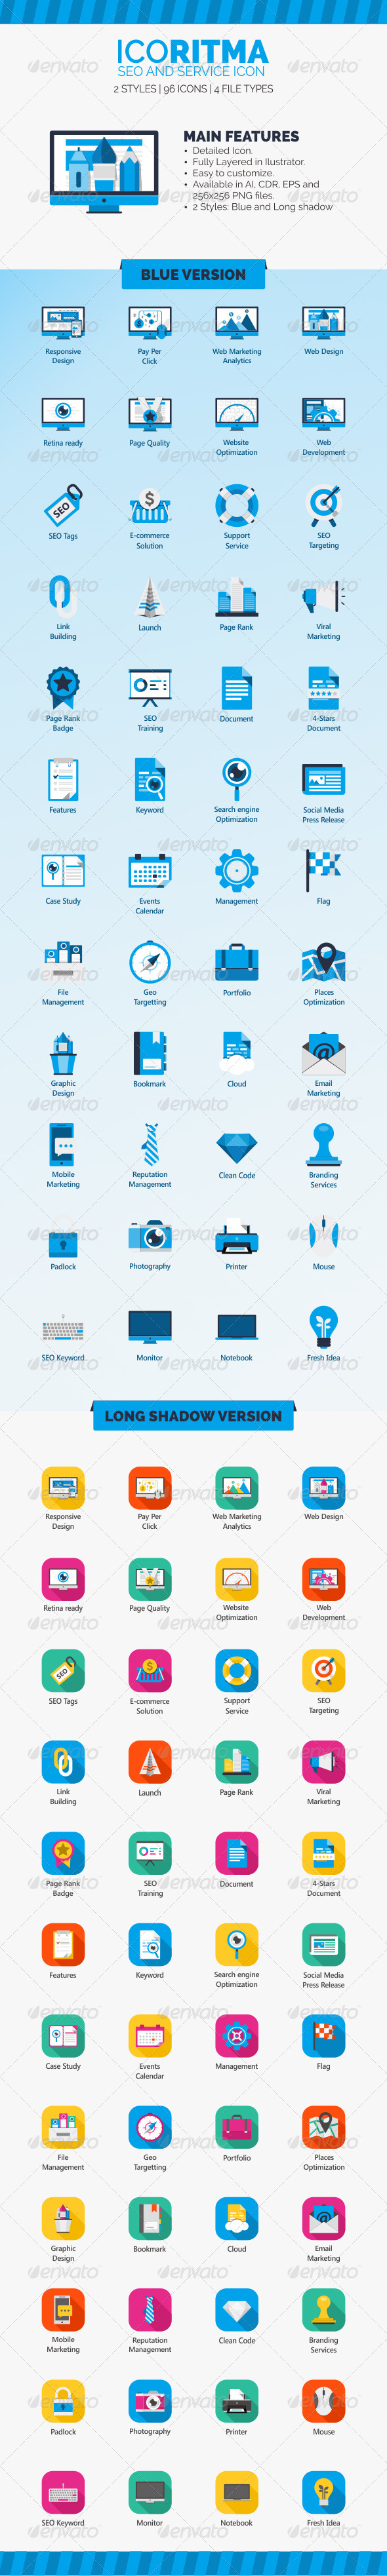 GraphicRiver Icoritma Seo and Service Icons 6275087